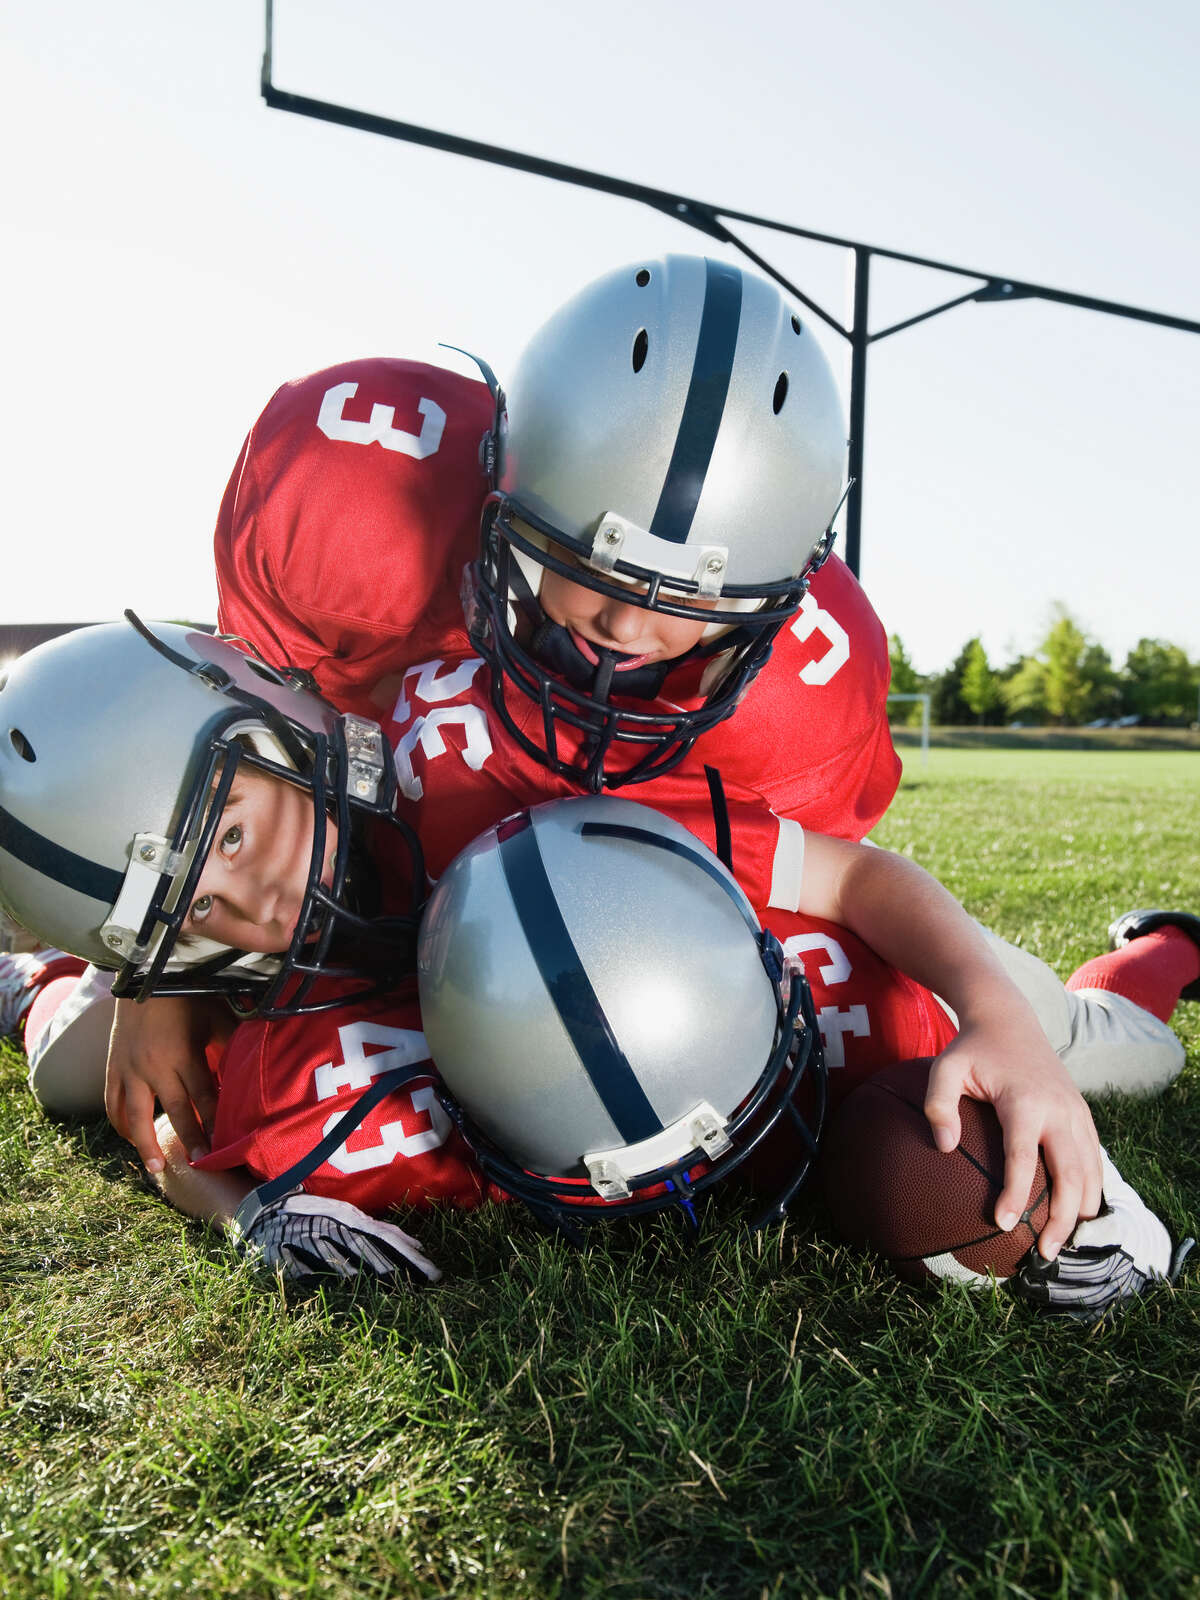 61% of parents surveyed supported a minimum tackling age. That number includes the 63% of mothers and 58% of fathers who support the restriction.